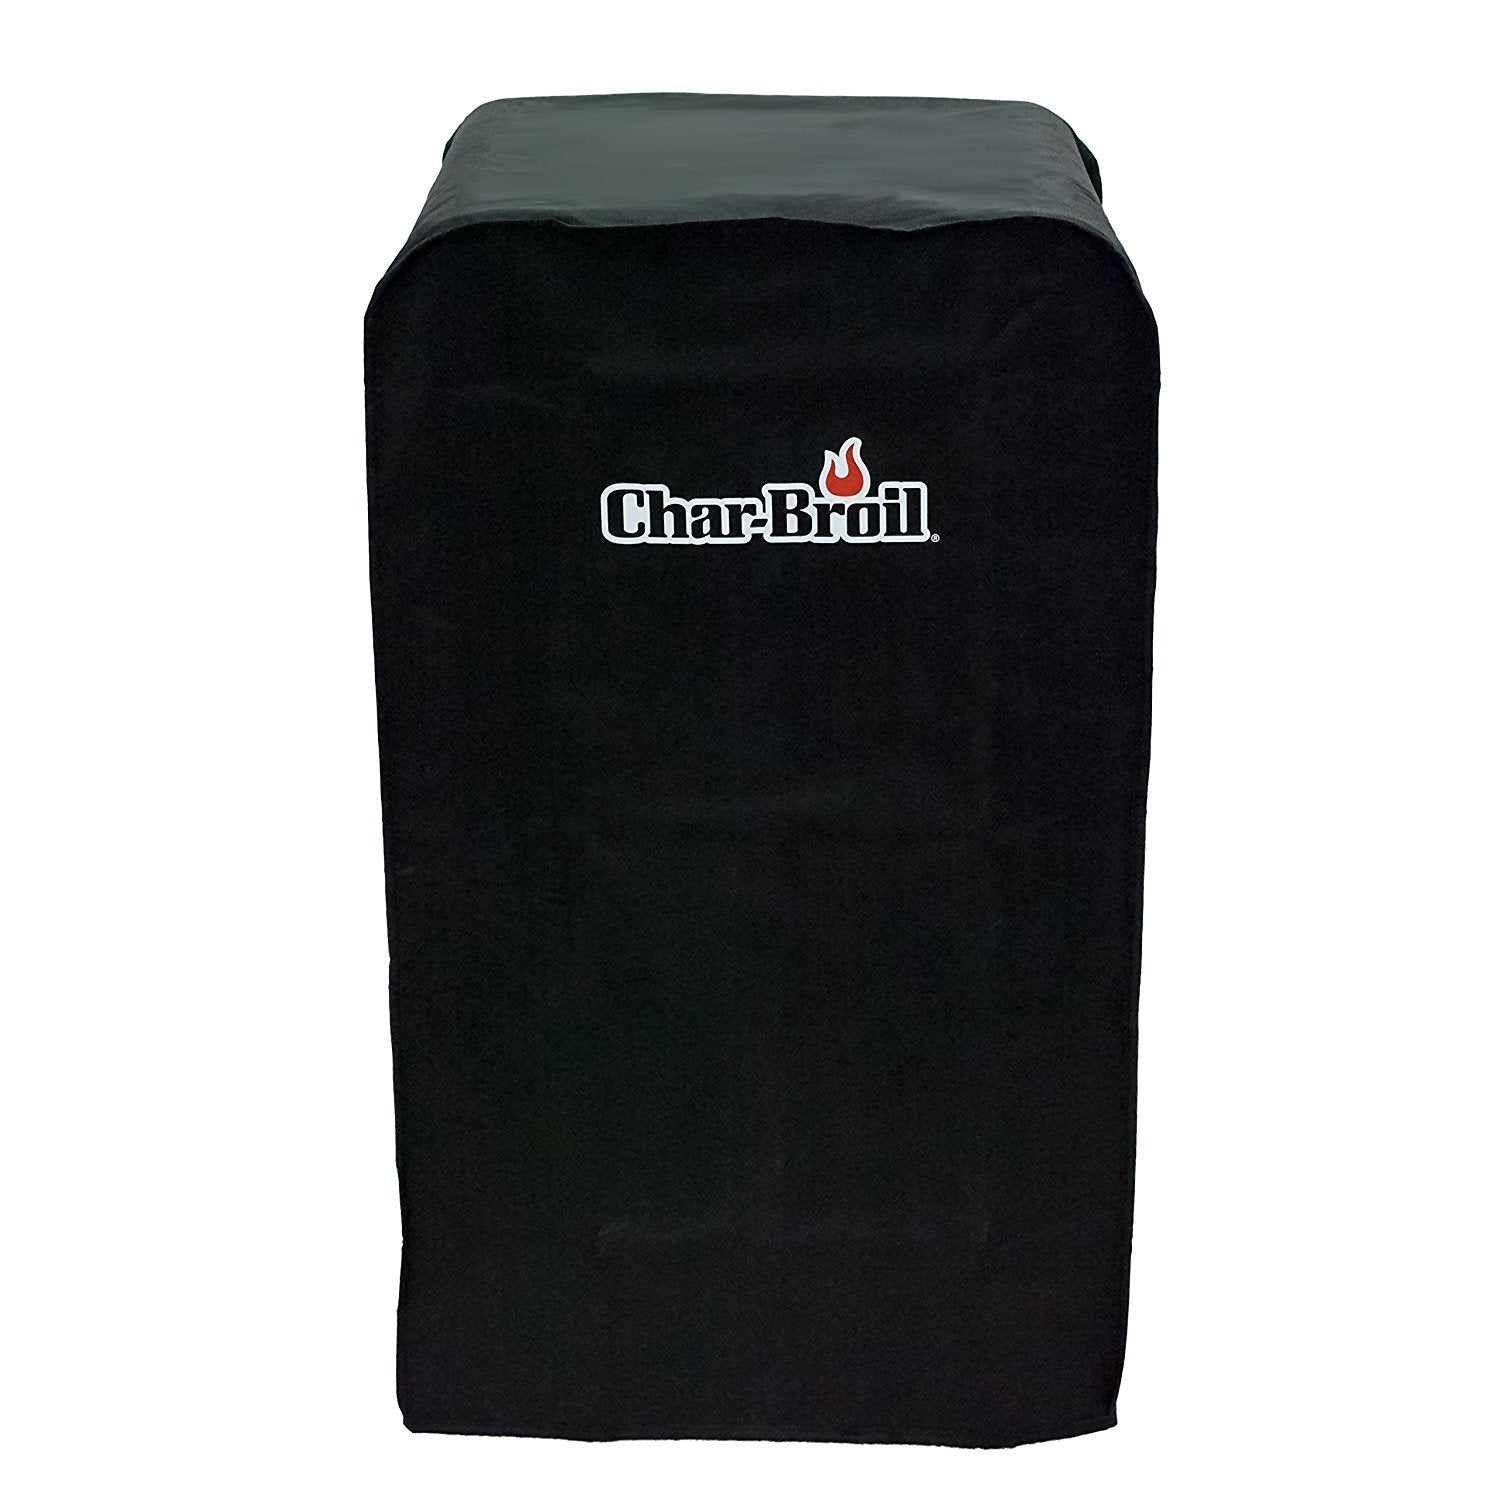 Char-Broil Digital Electric Smoker Cover